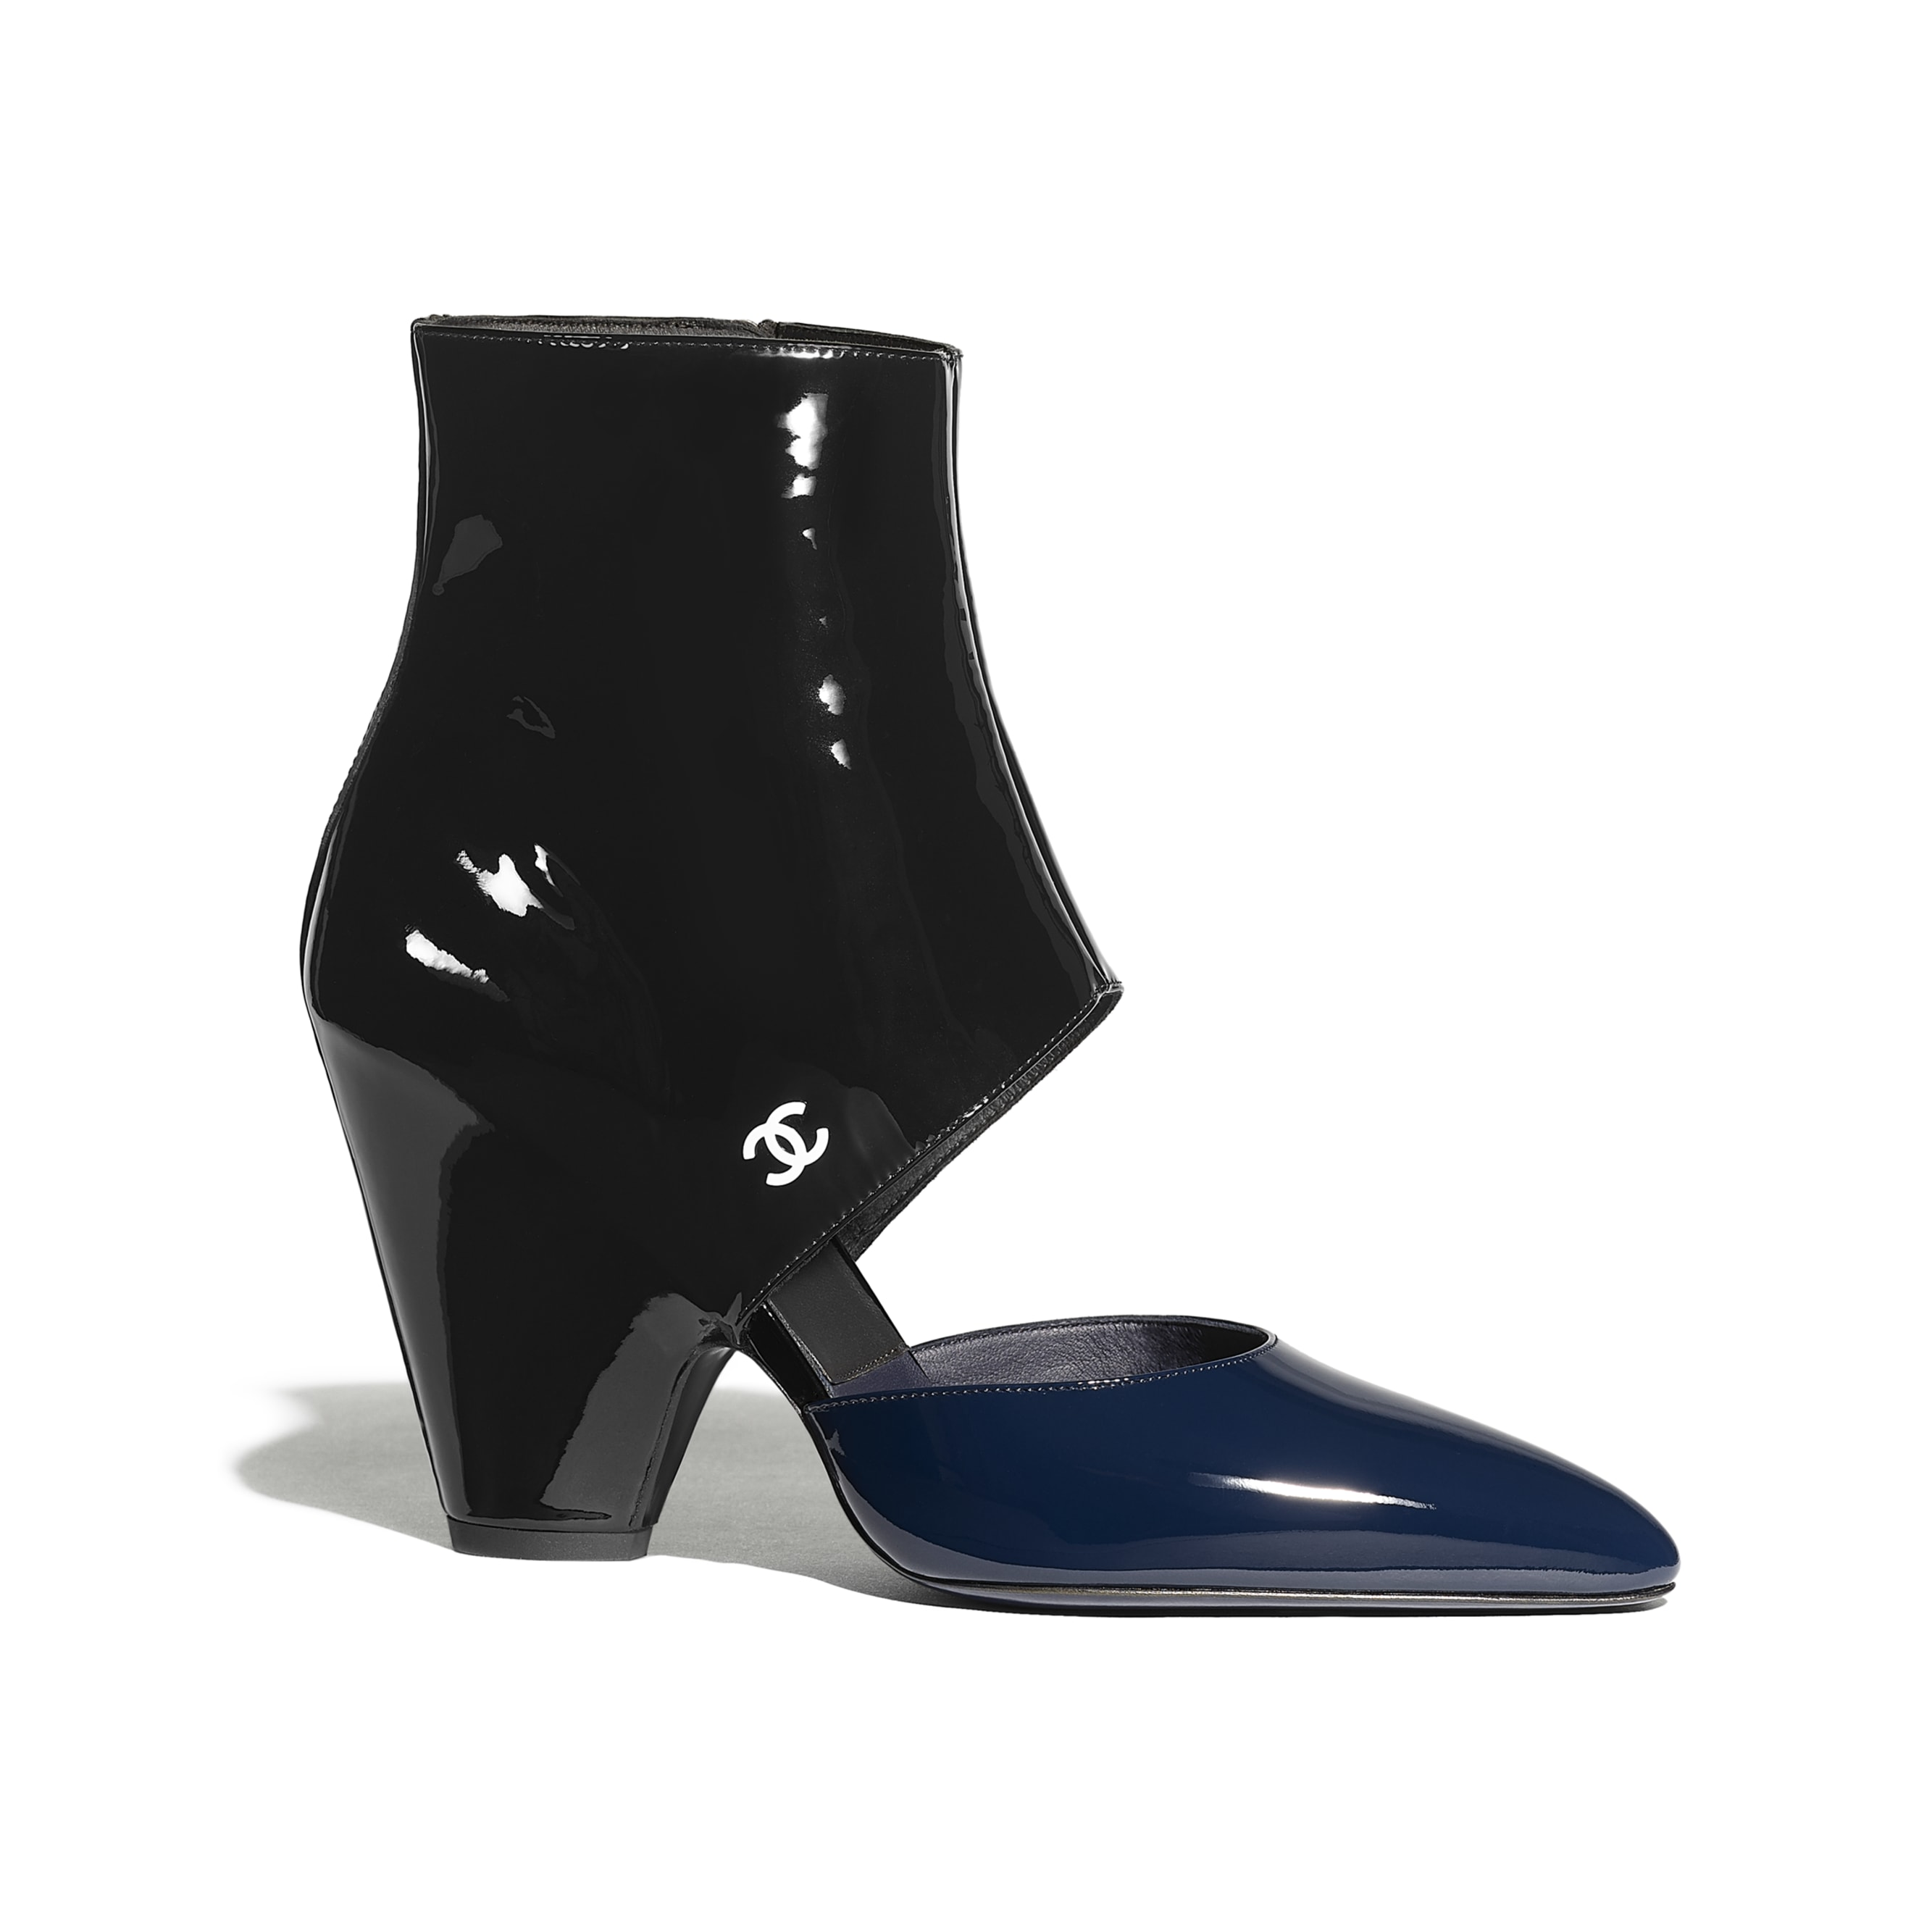 Open Ankle Boots - Navy Blue & Black - Patent Calfskin - CHANEL - Default view - see standard sized version